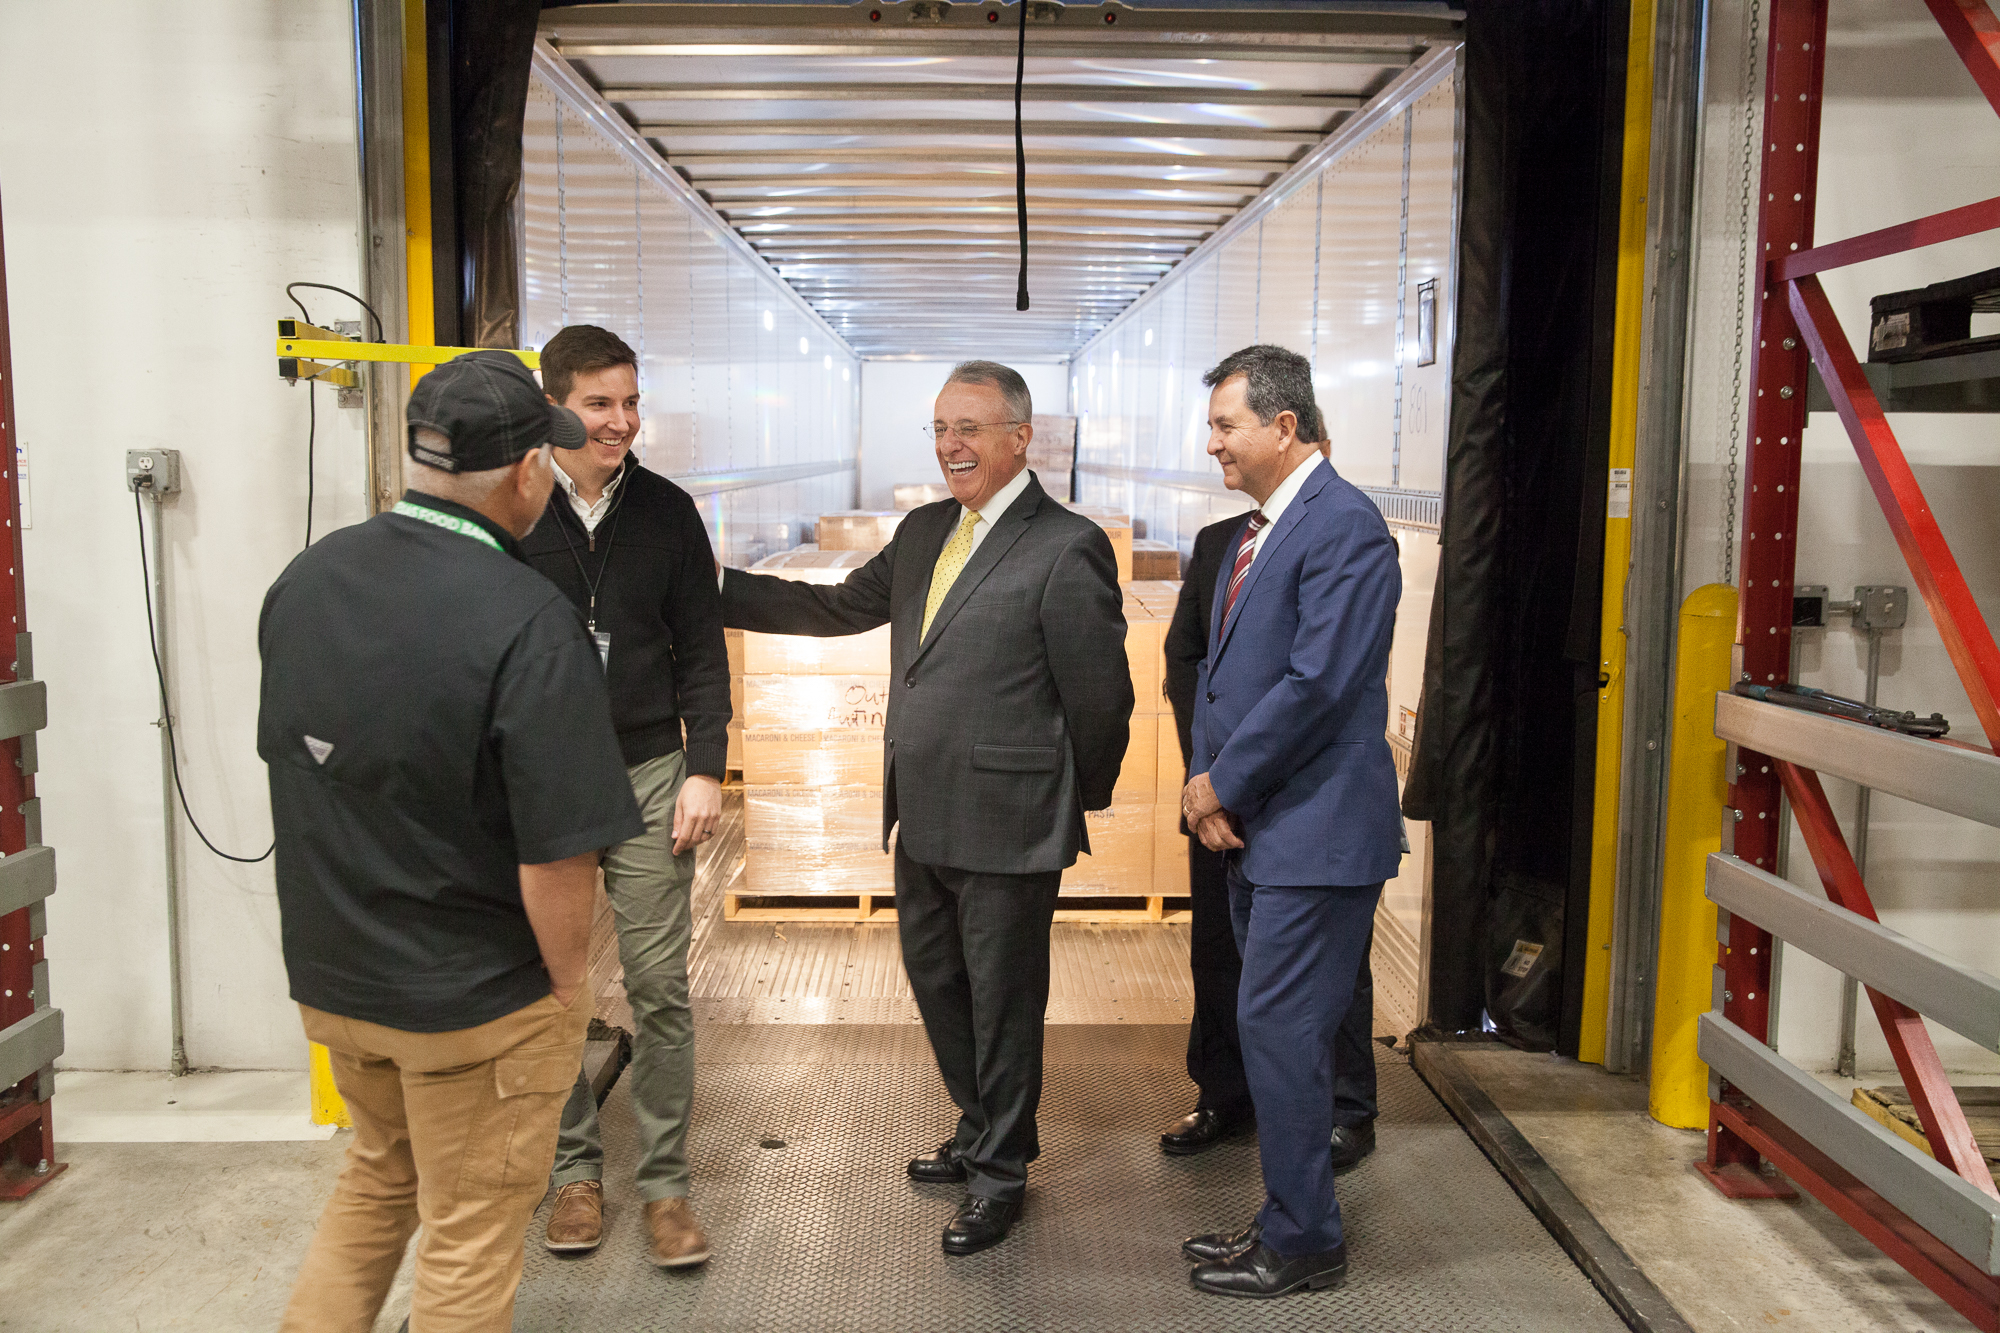 Elder Ulisses Soares talks with employees at the Central Texas Food Bank during a visit on Oct. 18, 2019. The Church donated 41,000 pounds of dry food products to the food bank.